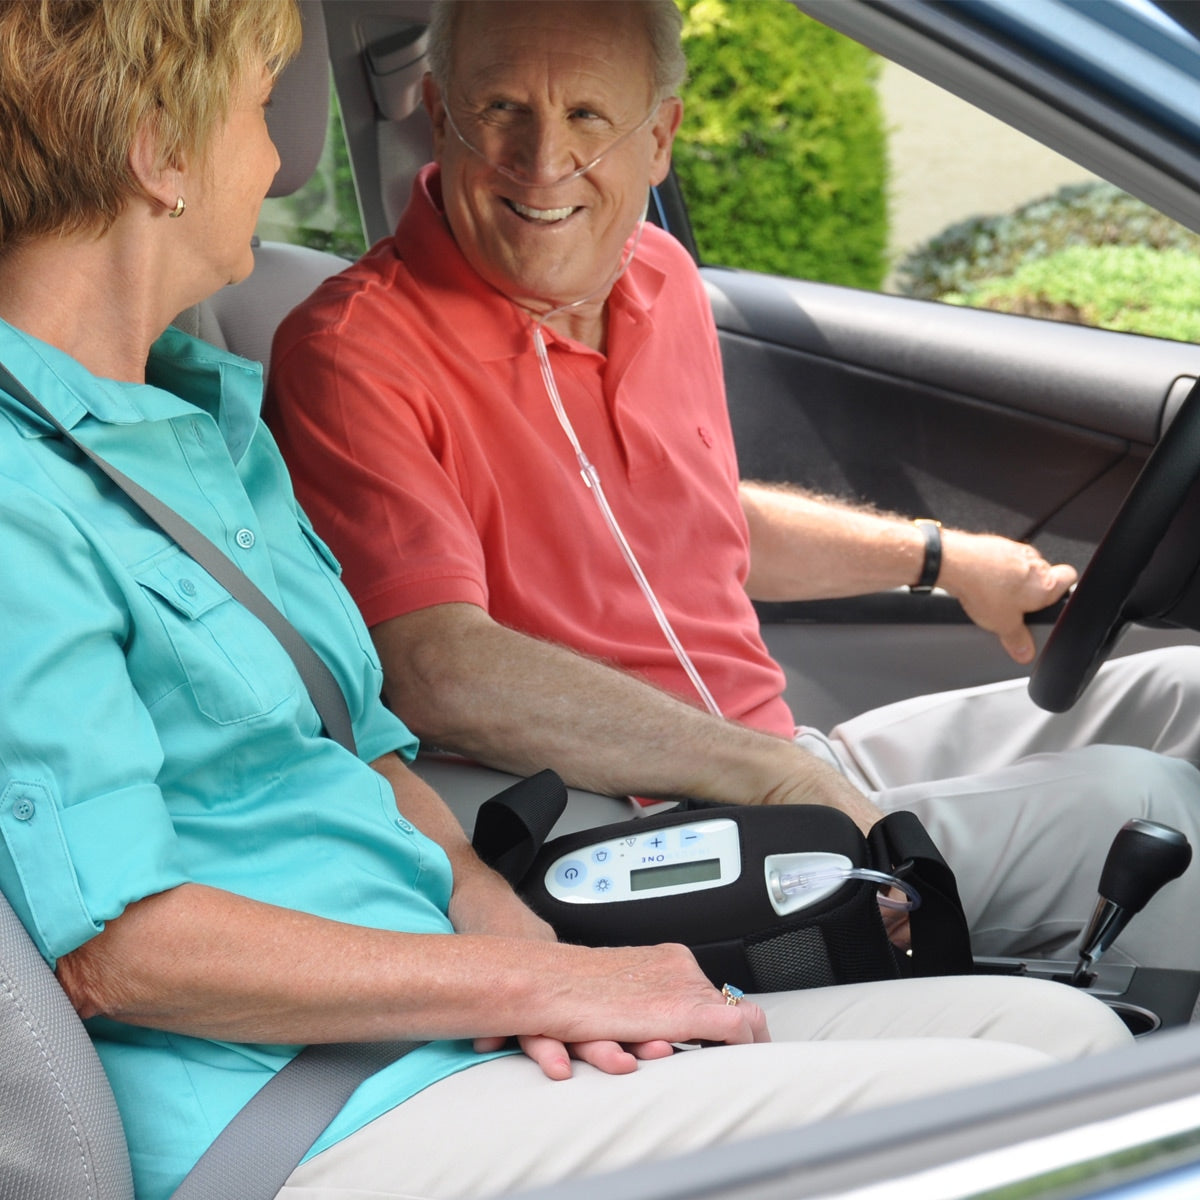 Man Driving With Inogen One G3 Portable Oxygen Concentrator.